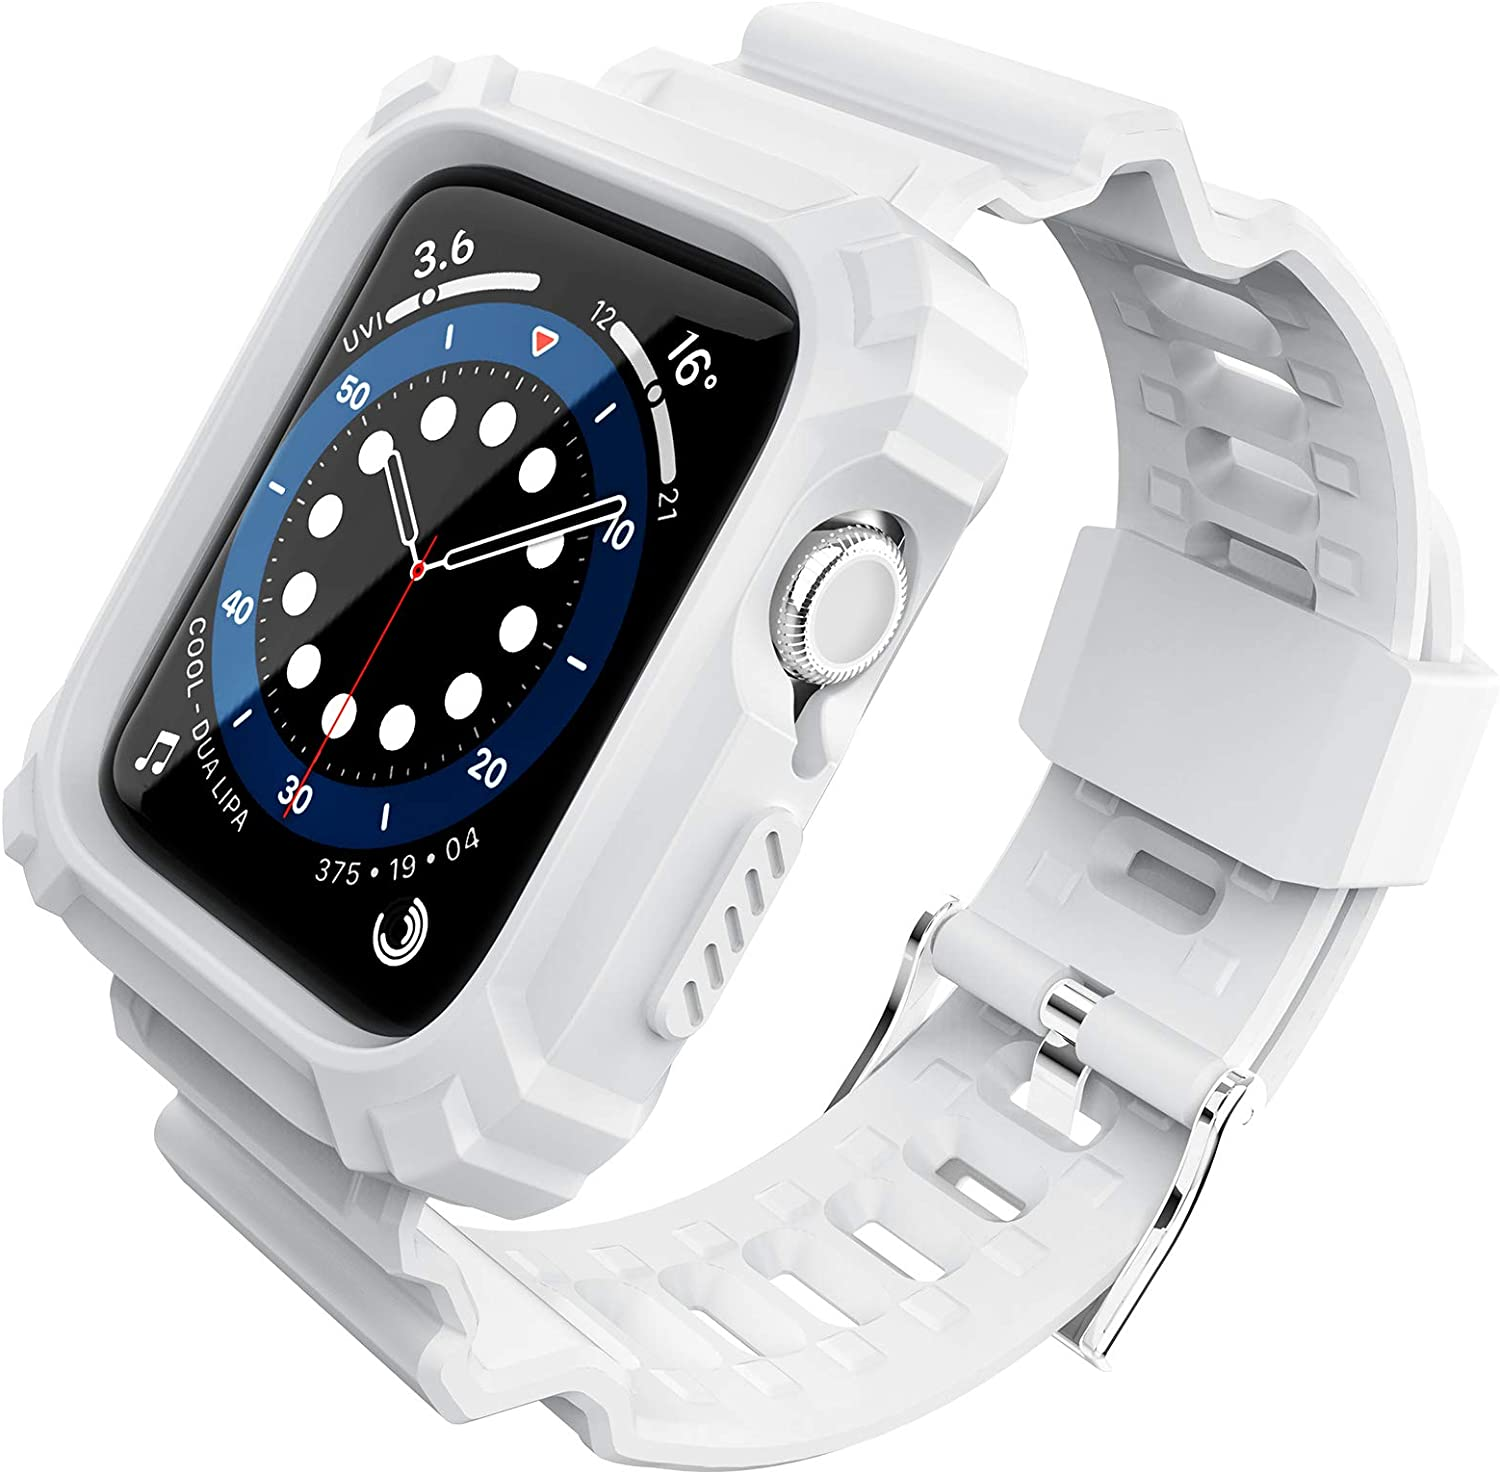 FITO Compatible with Apple Watch Bands 38mm 40mm Series with Case, Rugged Shock Resistant Case with TPU Sport Strap Bands Applicable to iWatch Series 6/5/4/3/2/1/SE - White